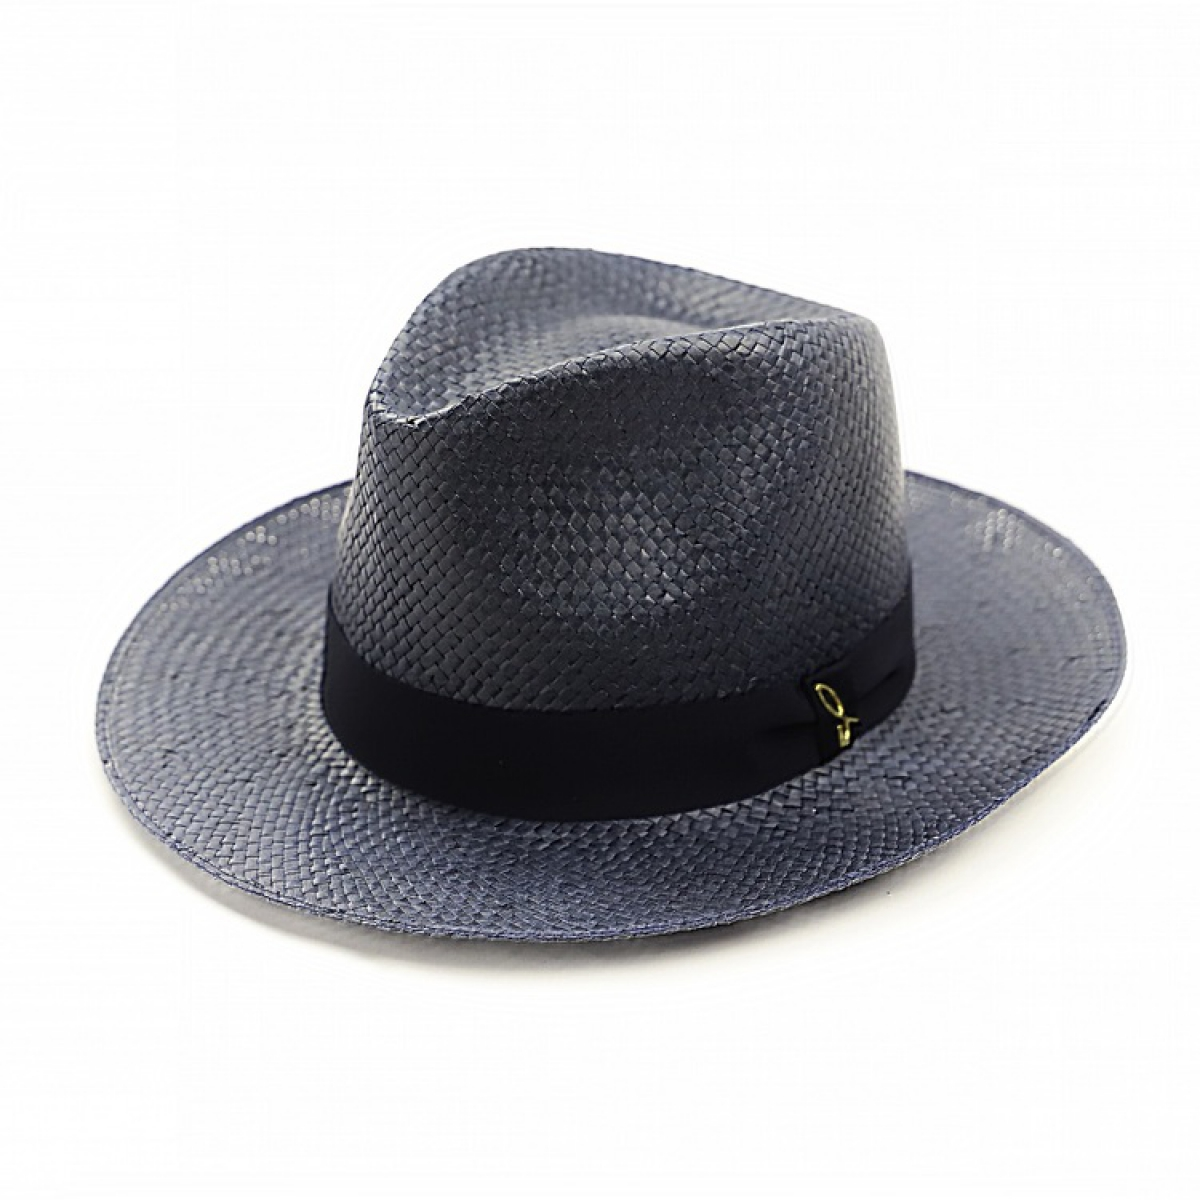 Blue made in Italy straw hat with black ribbon b7e11ddfb74d